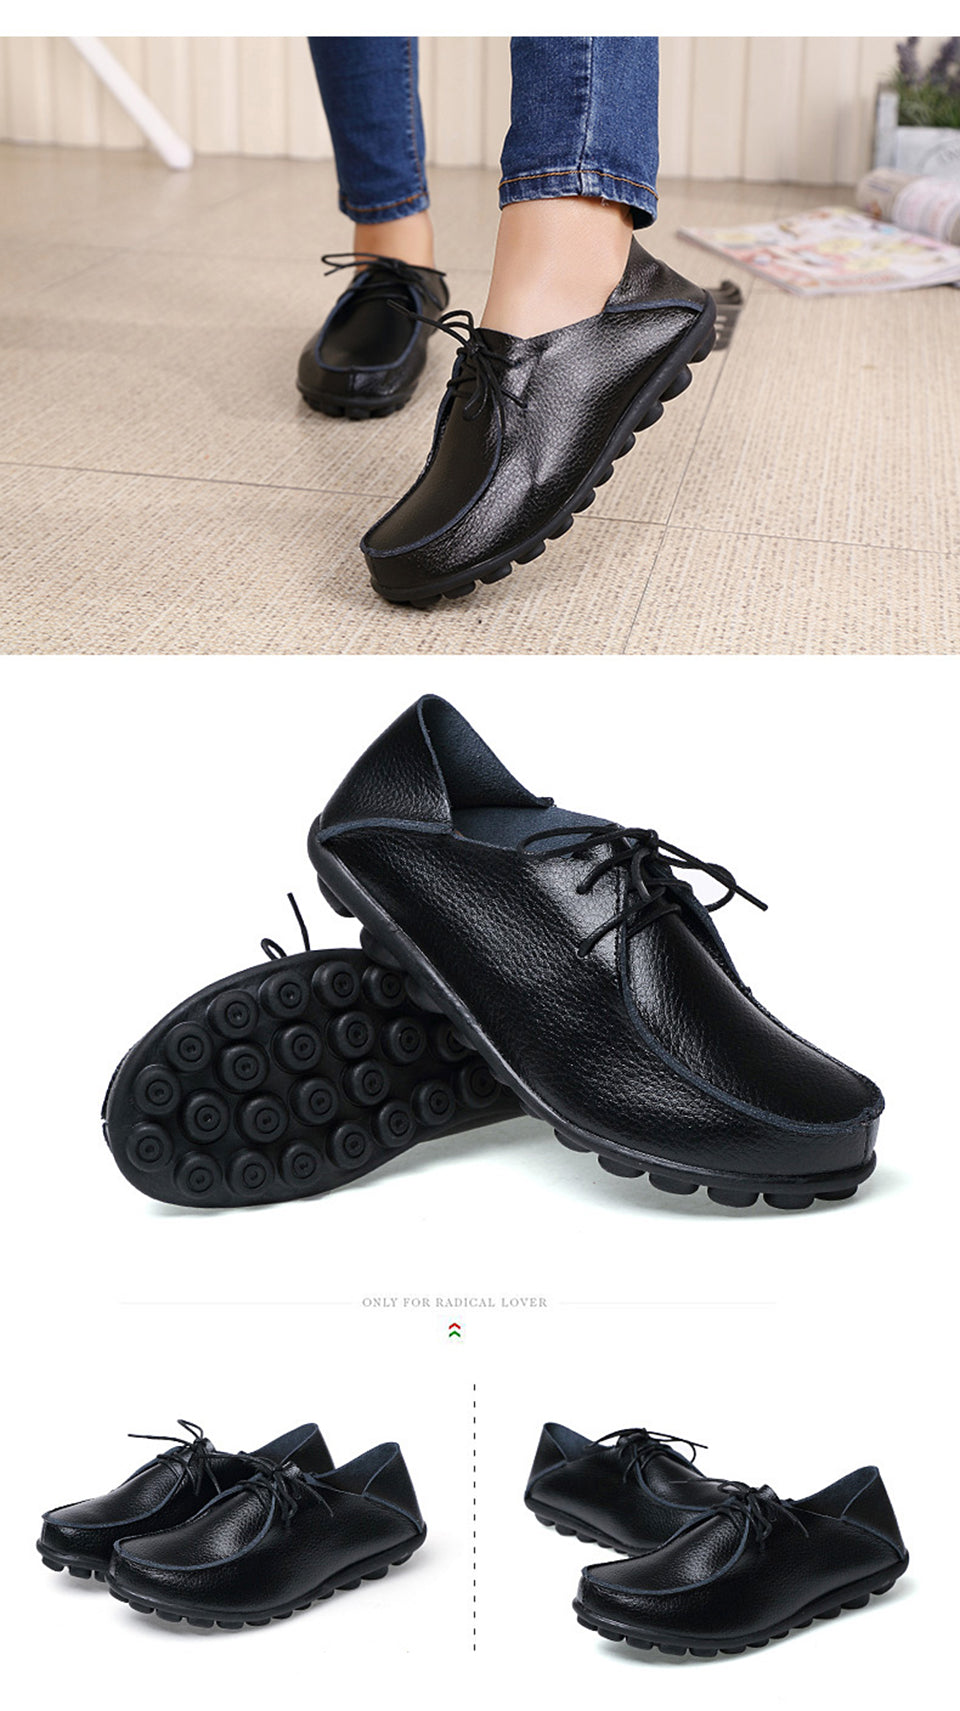 more black lace up leather shoes with black nodulated grippy base